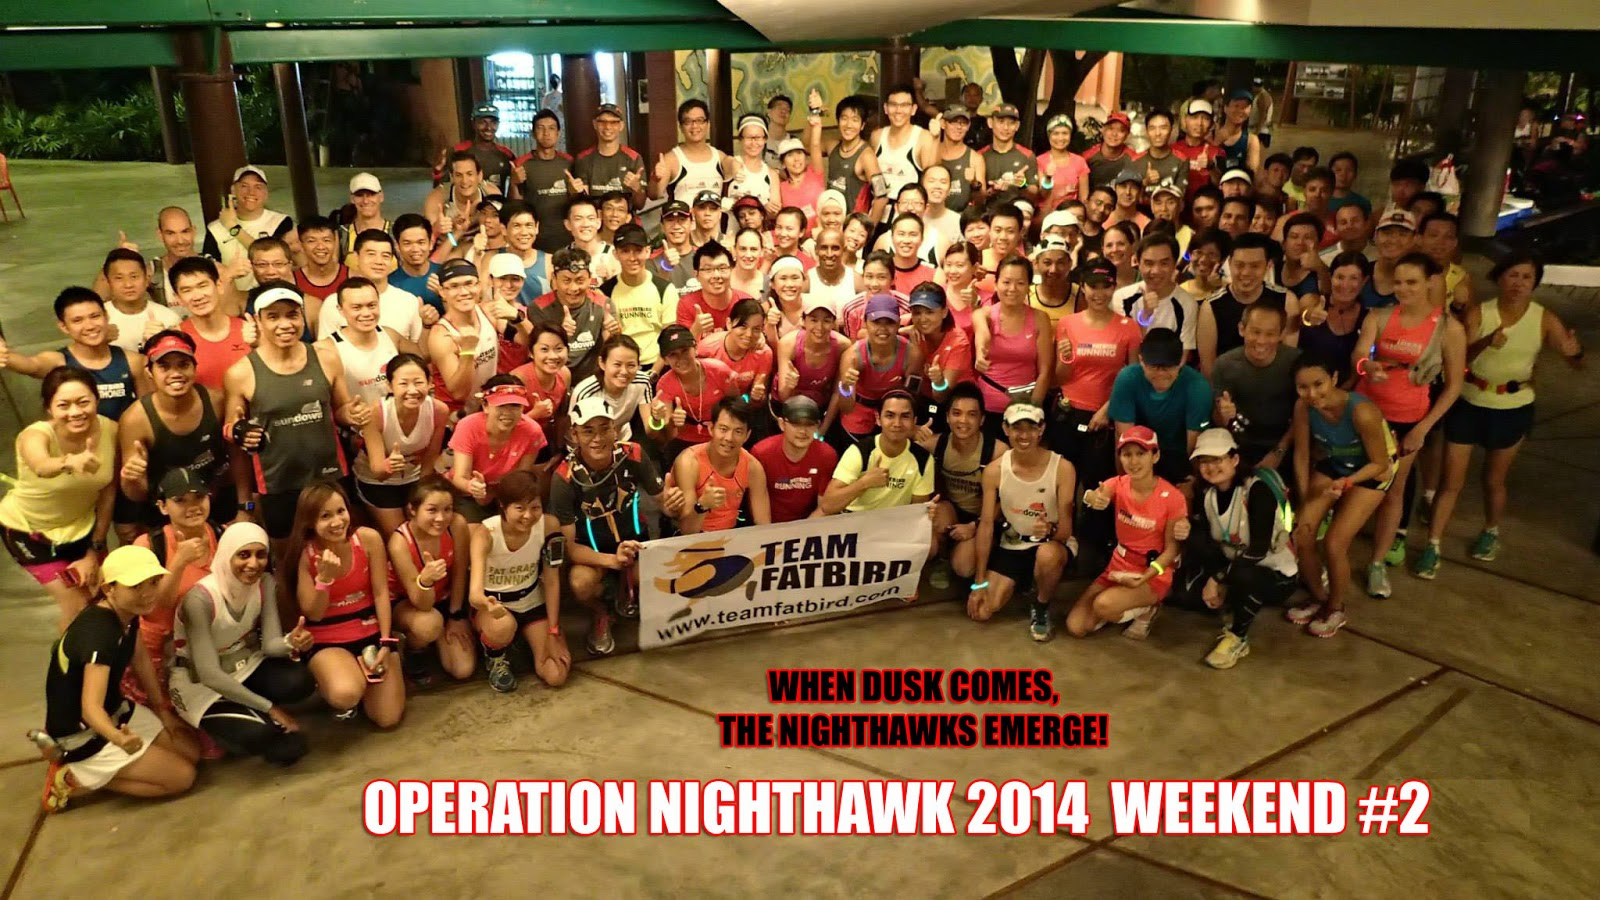 Ops NightHawk 2014: Maiden Night Mission